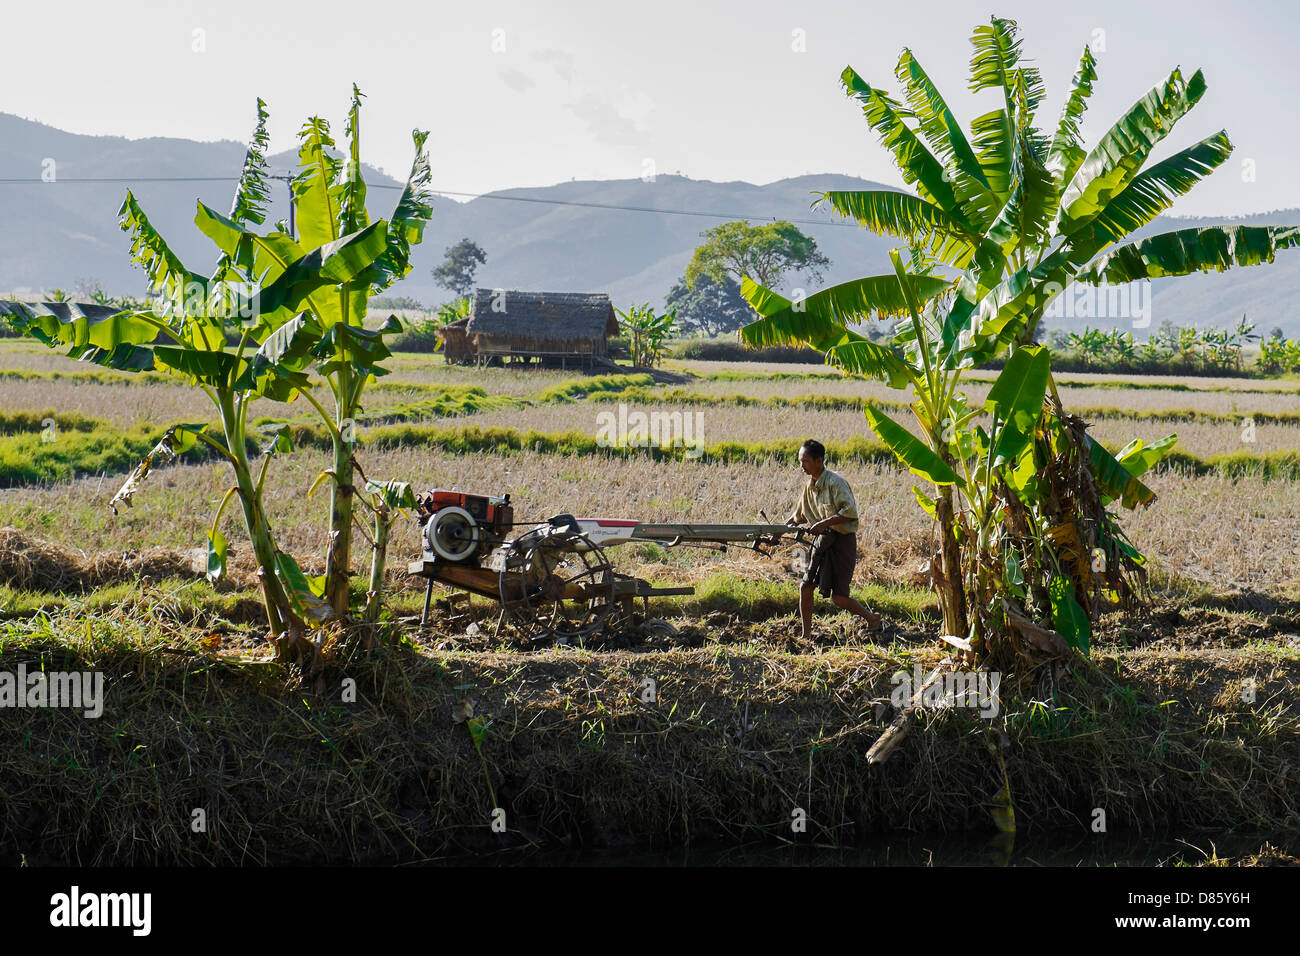 Farmer working on field, Nyaung Shwe, Myanmar, Asia - Stock Image